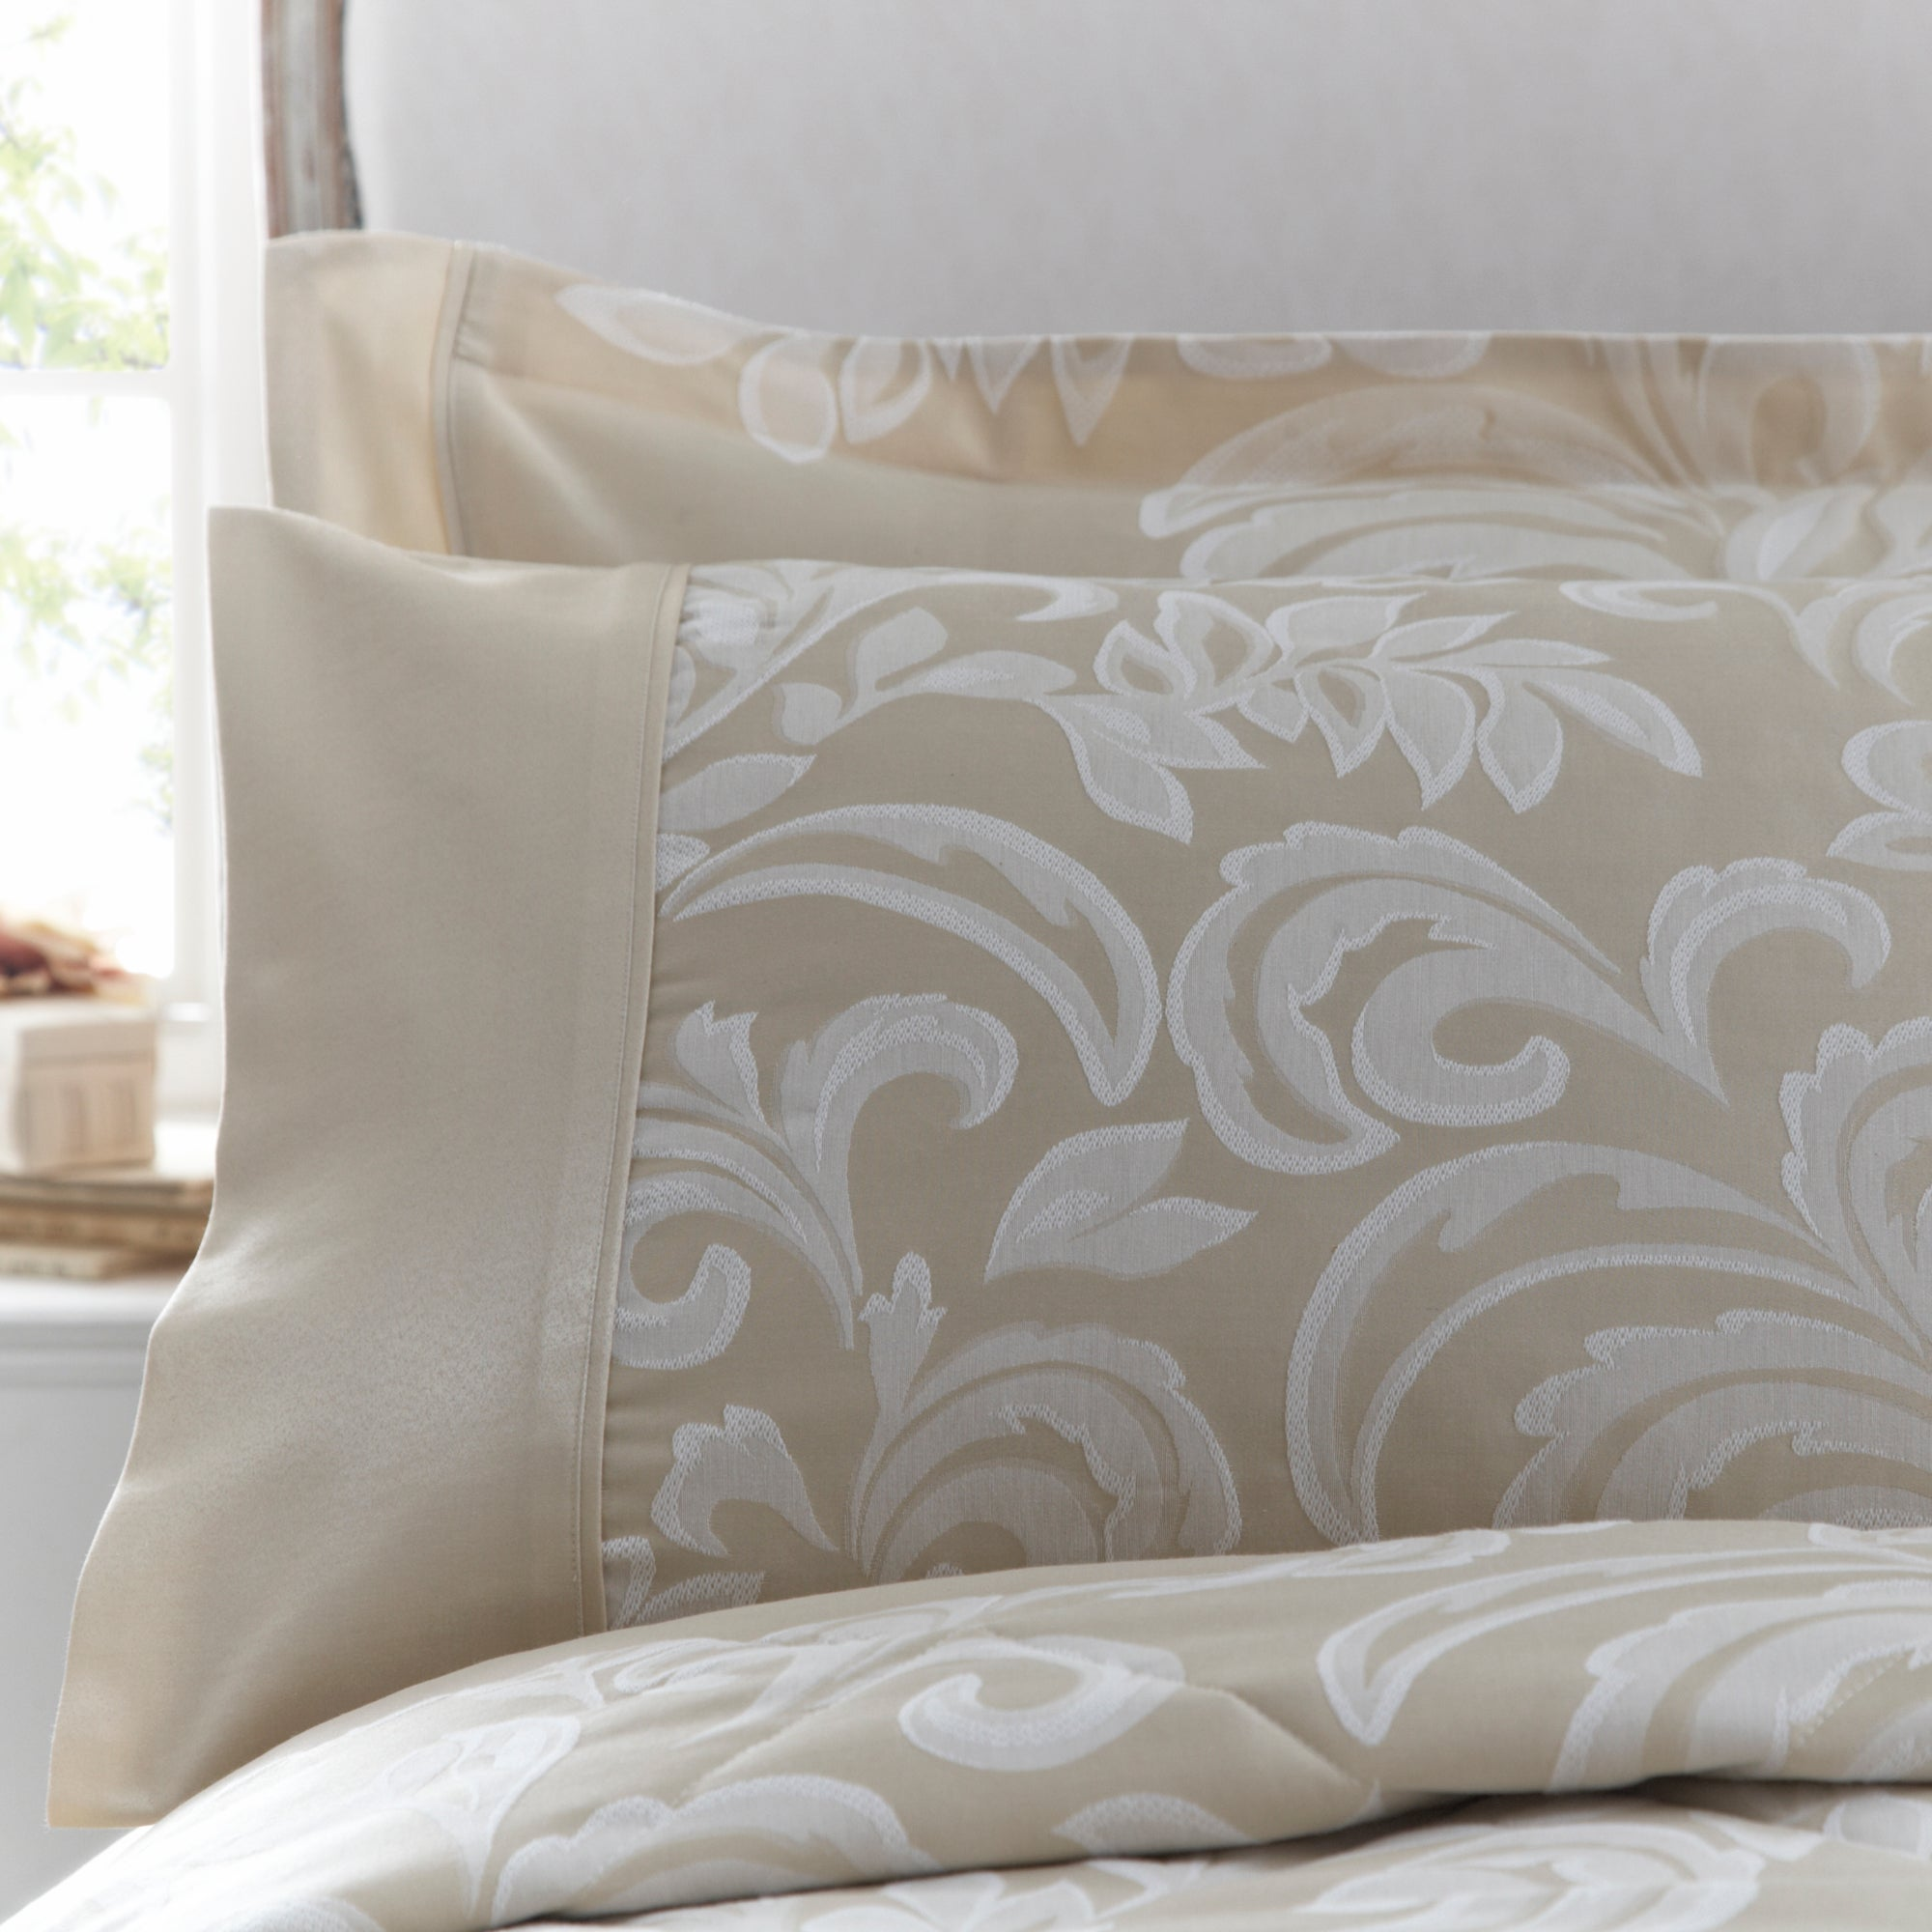 Dorma Gold Versailles Collection Cuffed Pillowcase